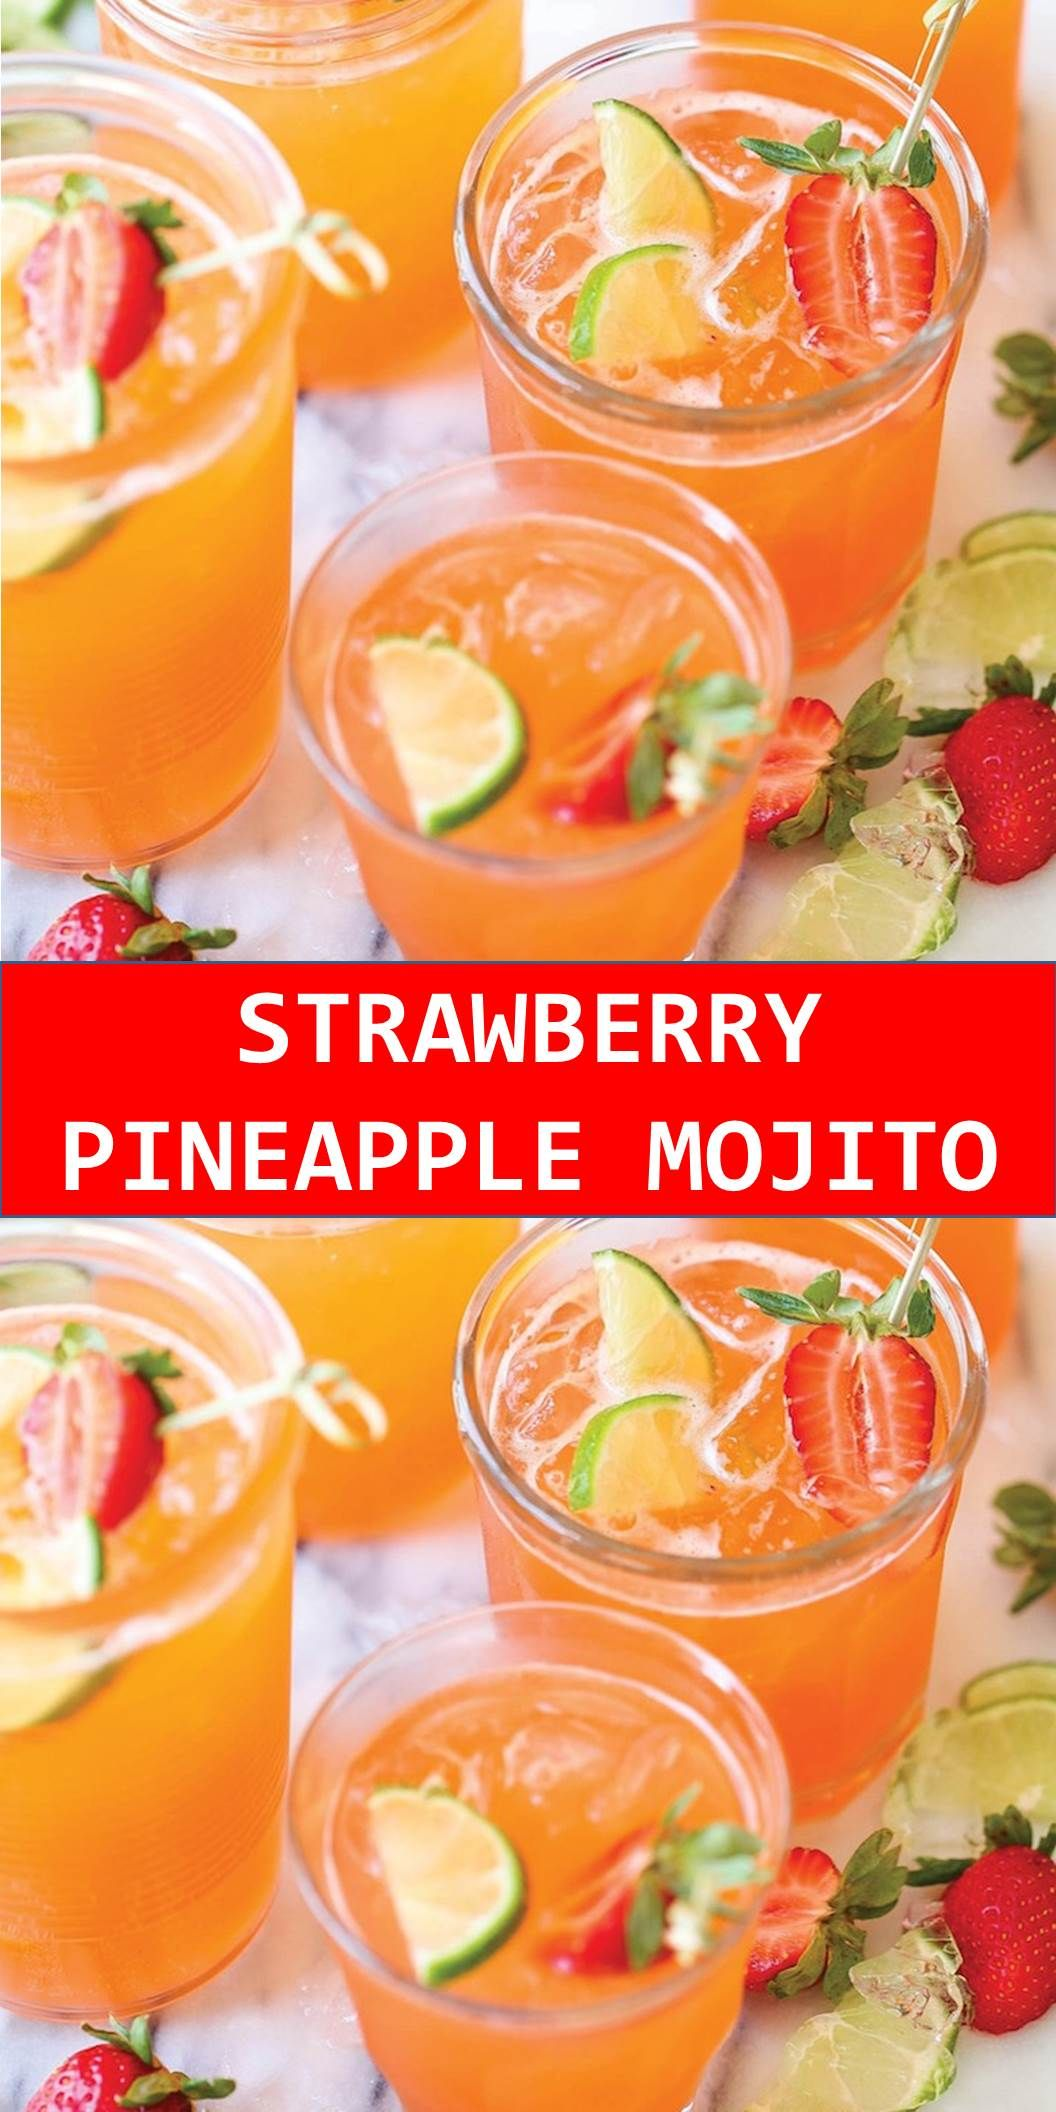 #DELICIOUS #STRAWBERRY #PINEAPPLE #MOJITO Your family's favorite food and drink ! STRAWBERRY PINEAPPLE MOJITO  yield: 4 SERVINGSprep time: 15 MINUTEStotal time: 15 MINUTES A fun, sweet tropical twist to everyone's favorite cocktail! And you can easily transform this to a non-alcoholic drink! #refreshingsummerdrinks